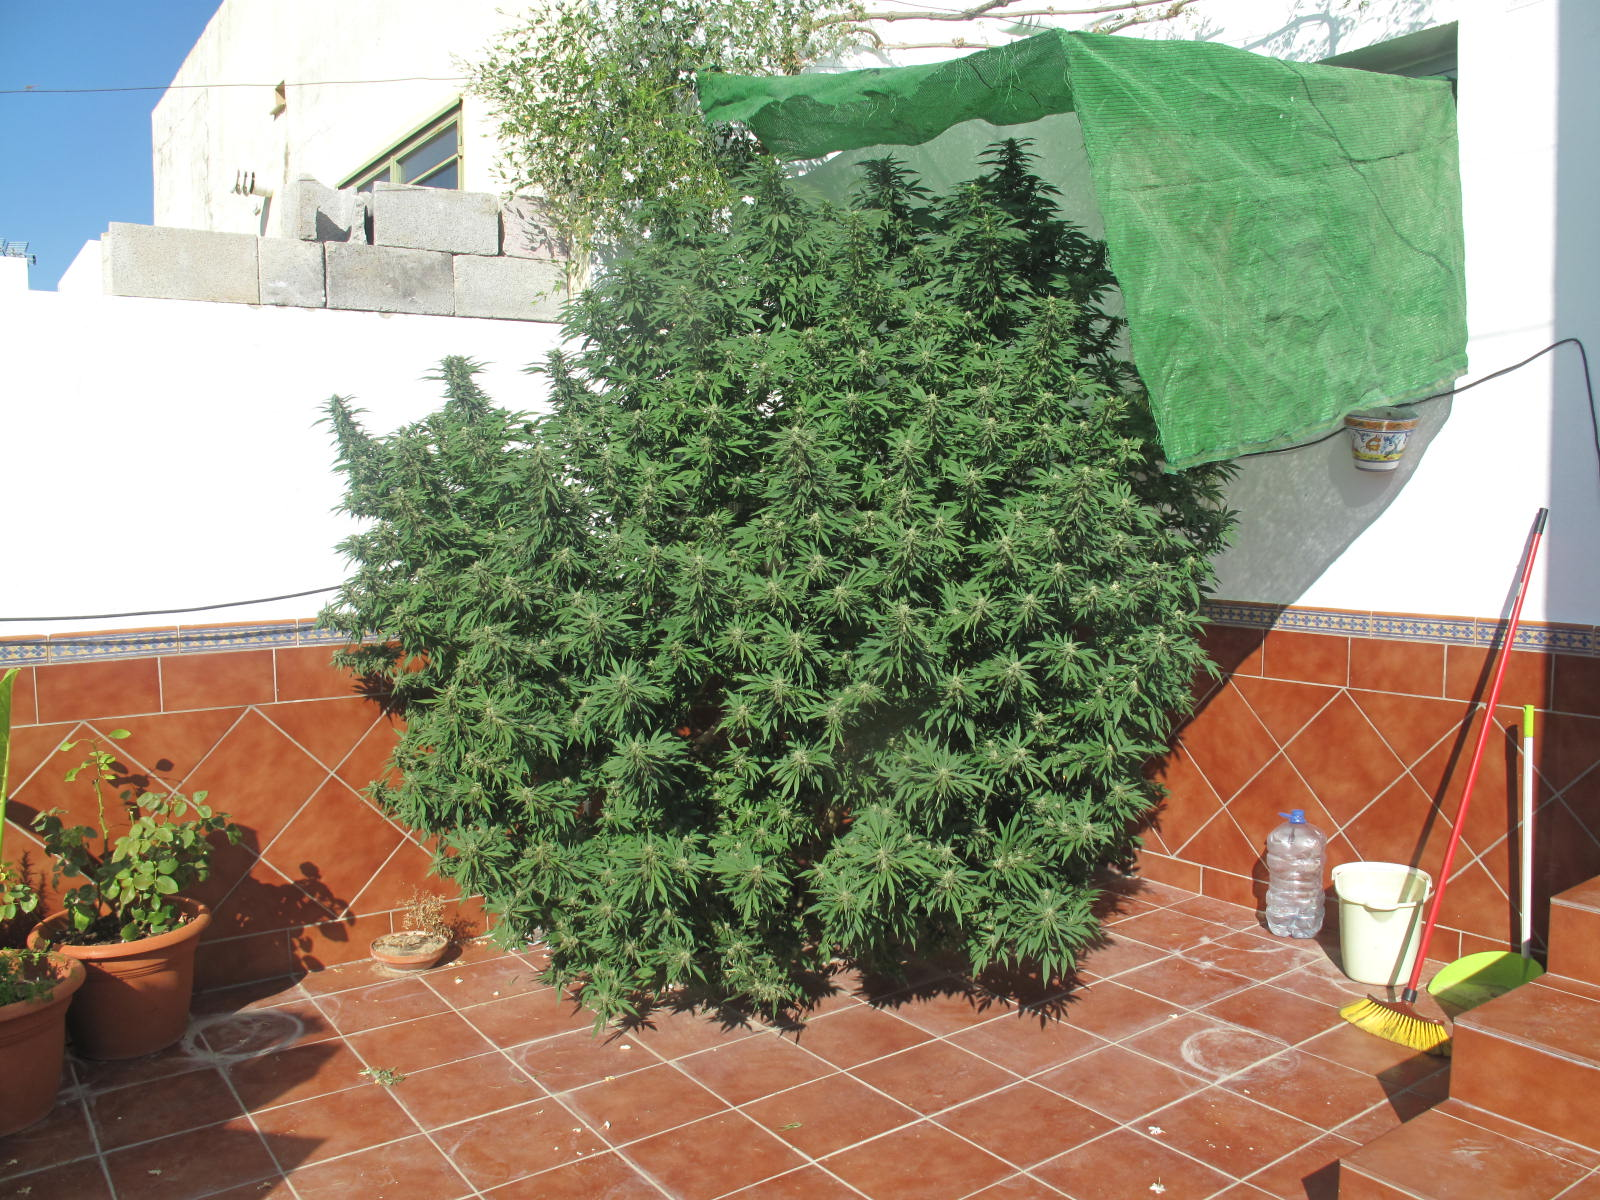 Jefatura de policia local paradas la policia local de for Plantas marihuana interior